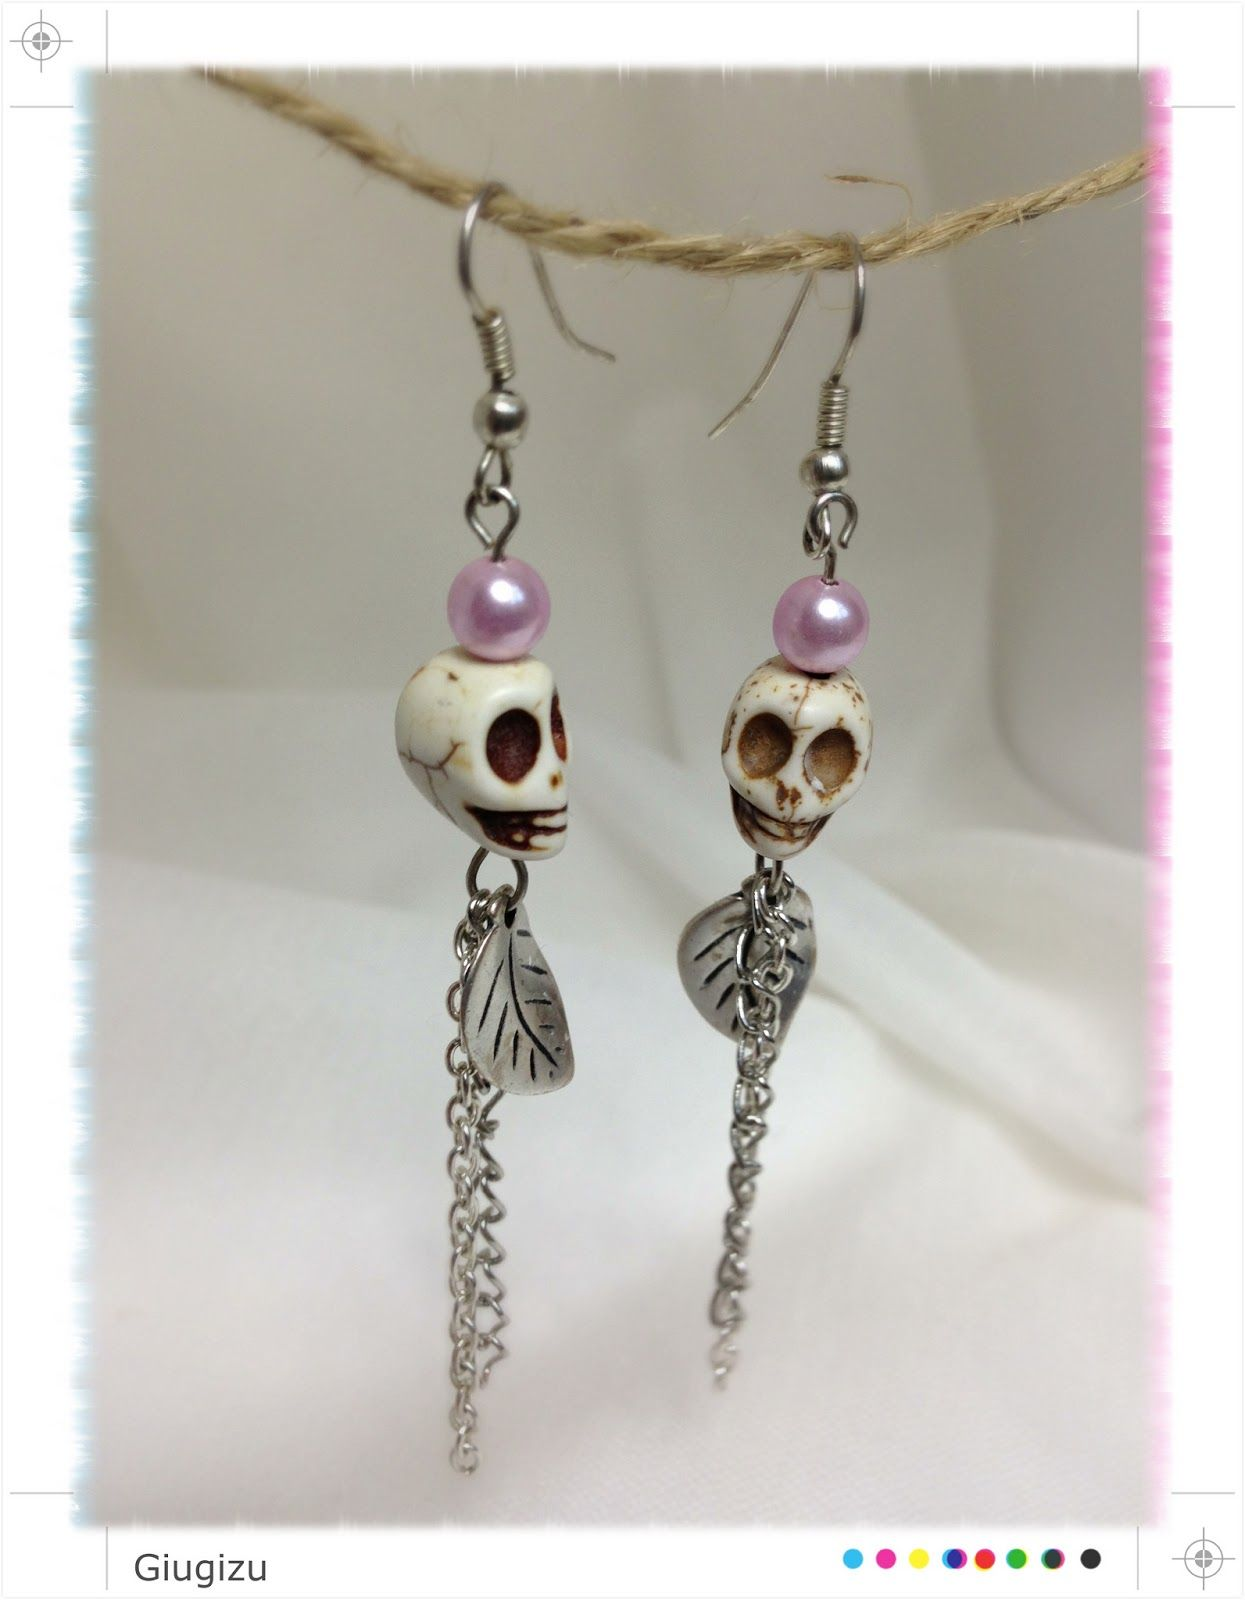 Skull pendant earrings. Check my blog to see more :) http://giugizu.blogspot.it/2013/07/skull-earrings.html